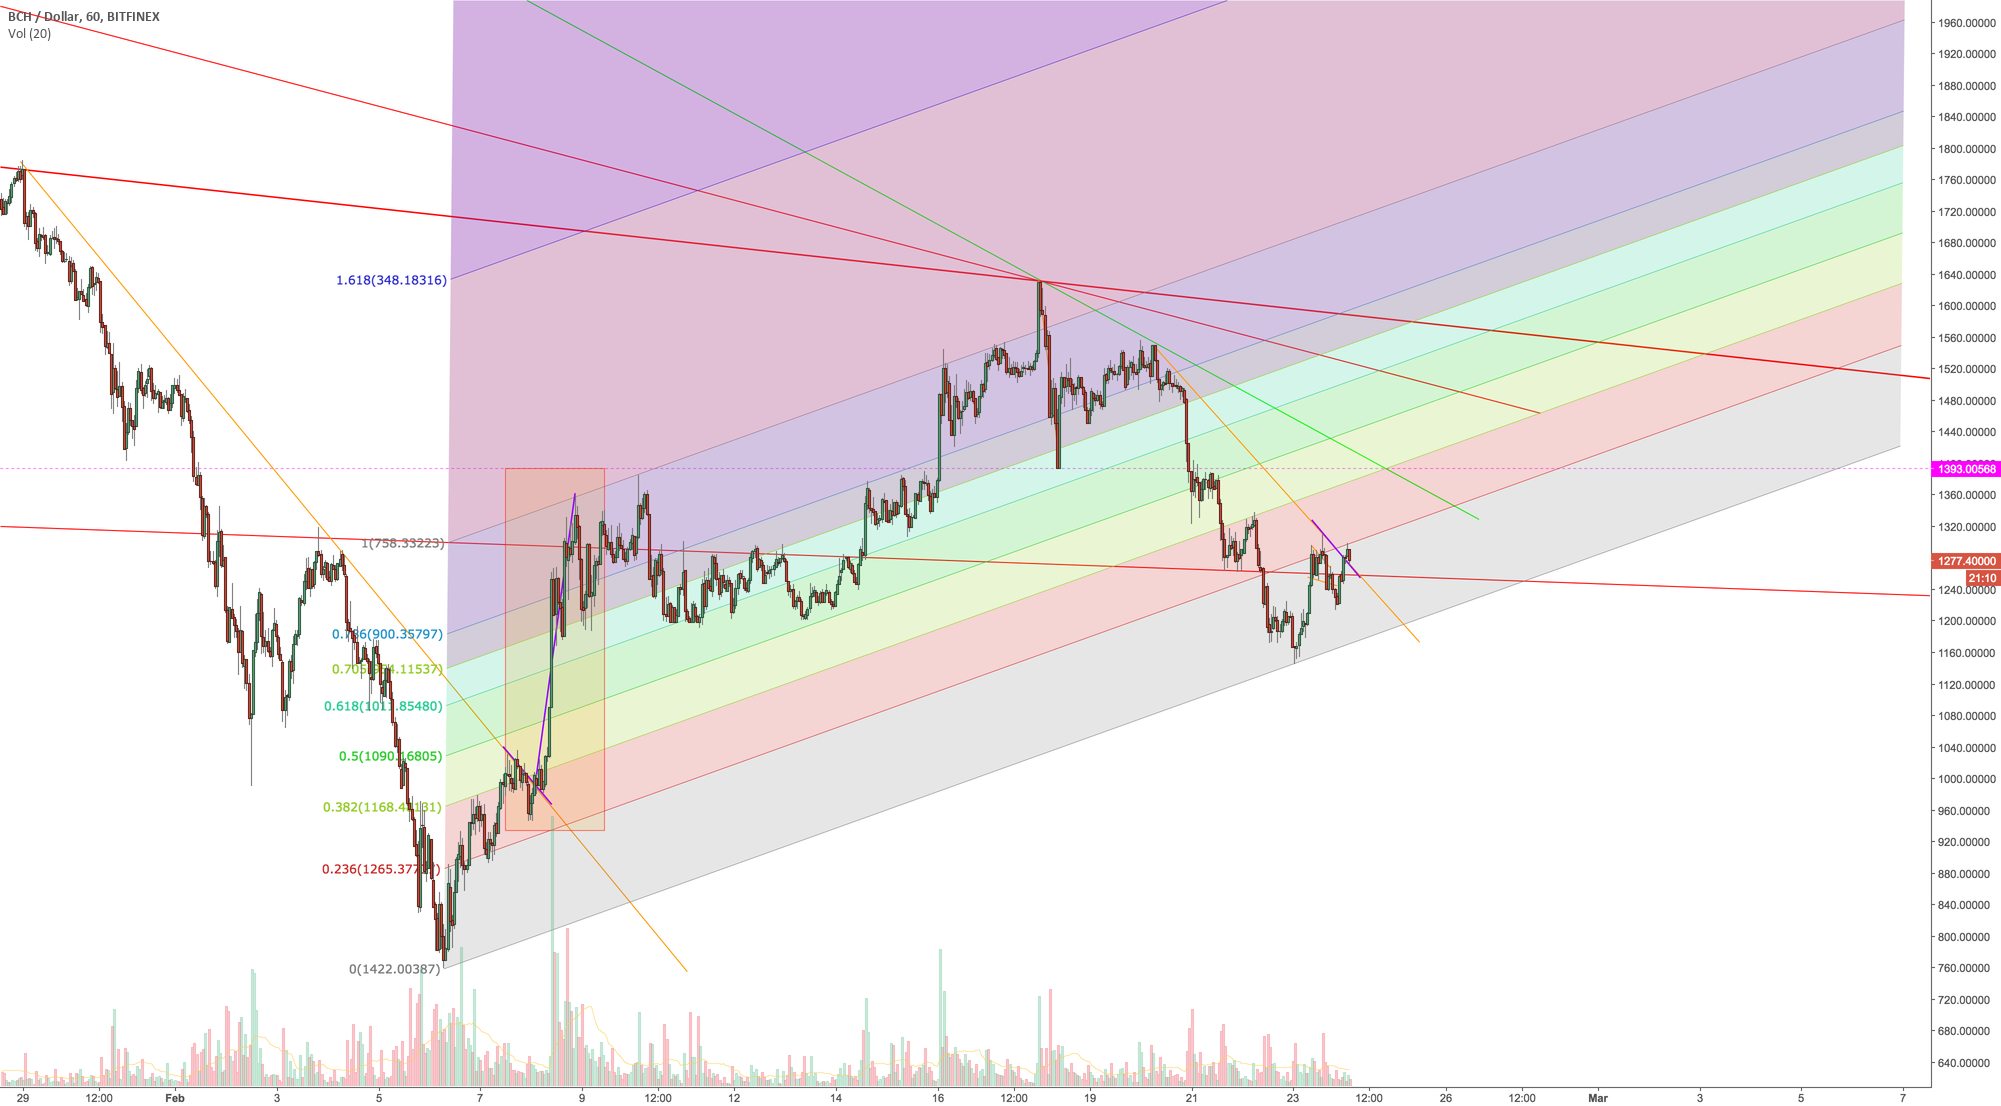 BCH USD Fib channel and fractal